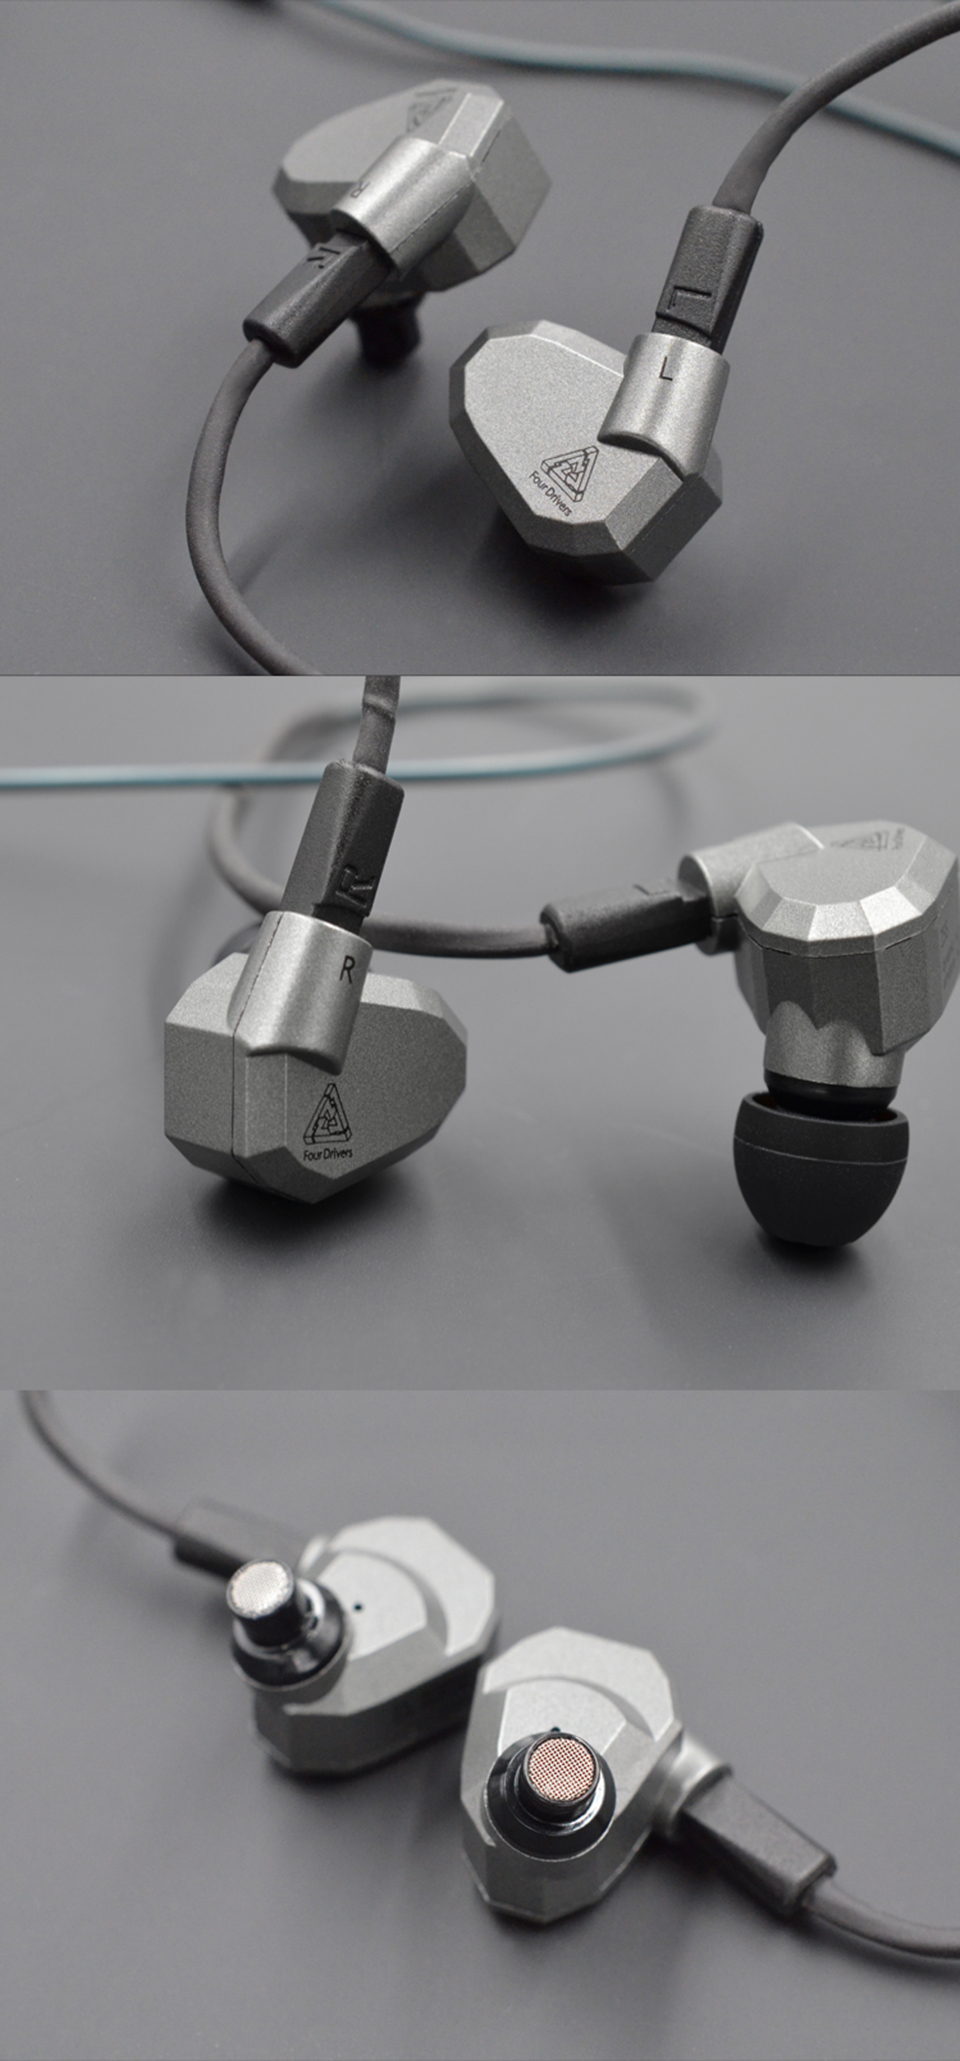 KZ ZS5 Double Hybrid Dynamic and Balanced Armature Sport Earphone Four Driver In Ear Headset Noise Isolating HiFi Music Earbuds